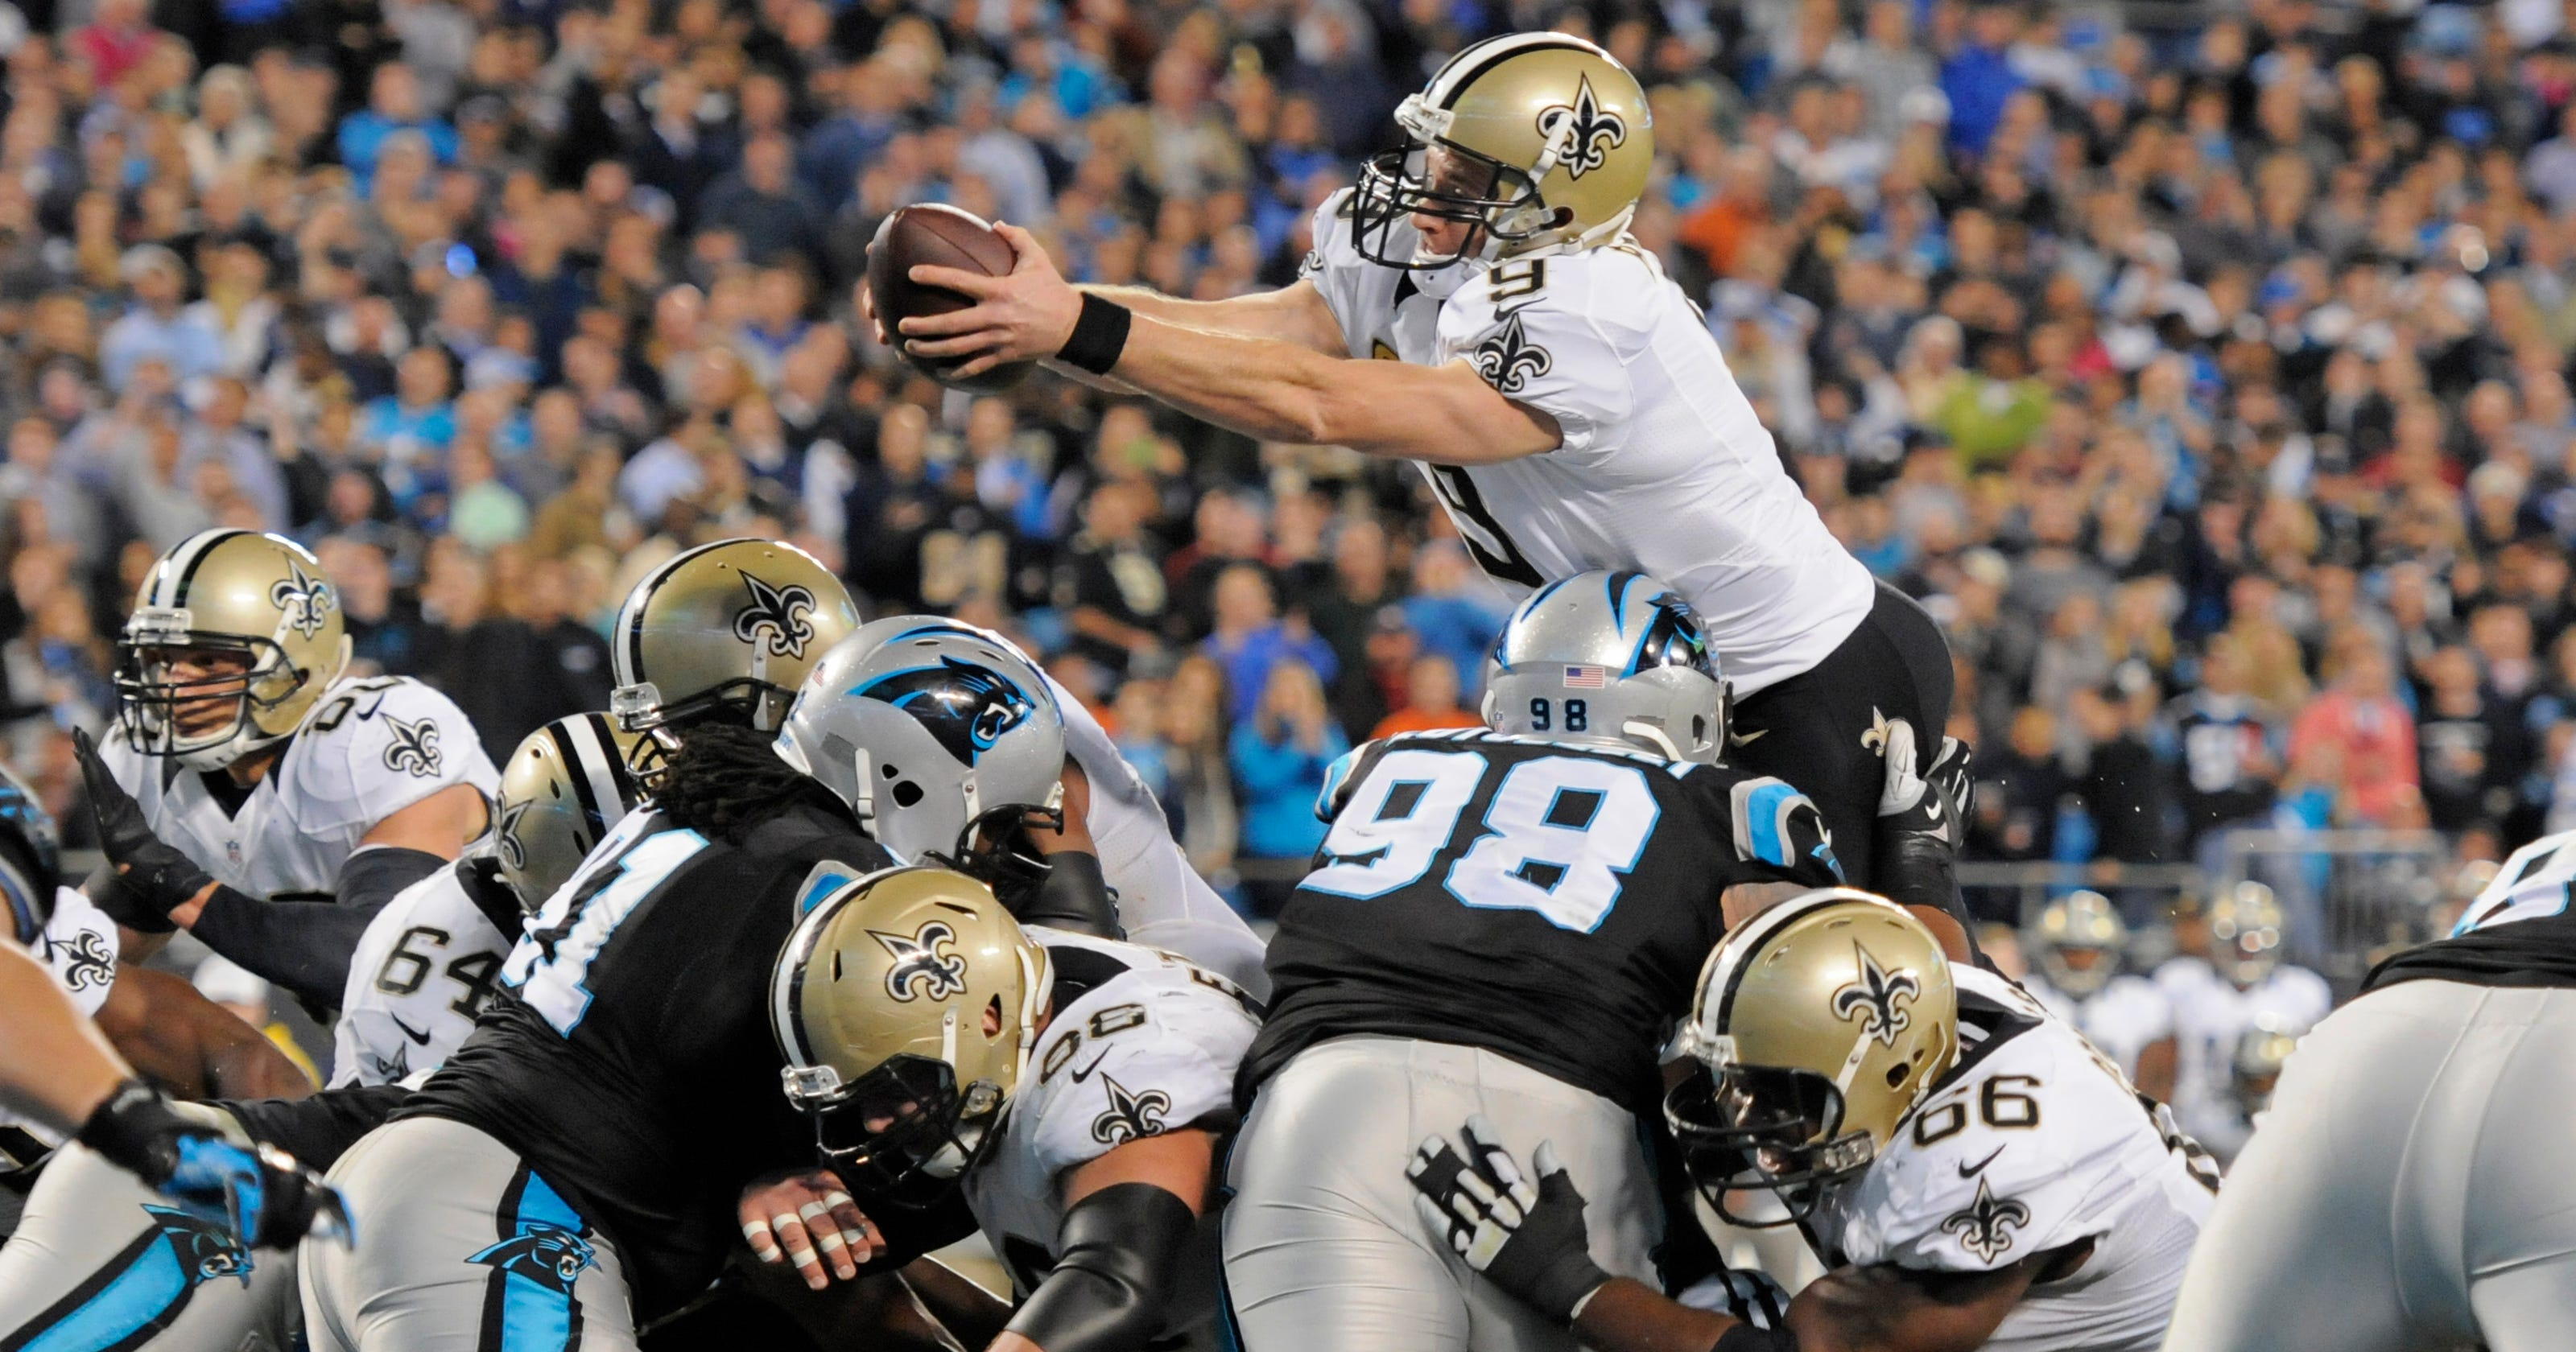 637c1dbf1 NFL quarterback Drew Brees may be on to something with his flag football  league